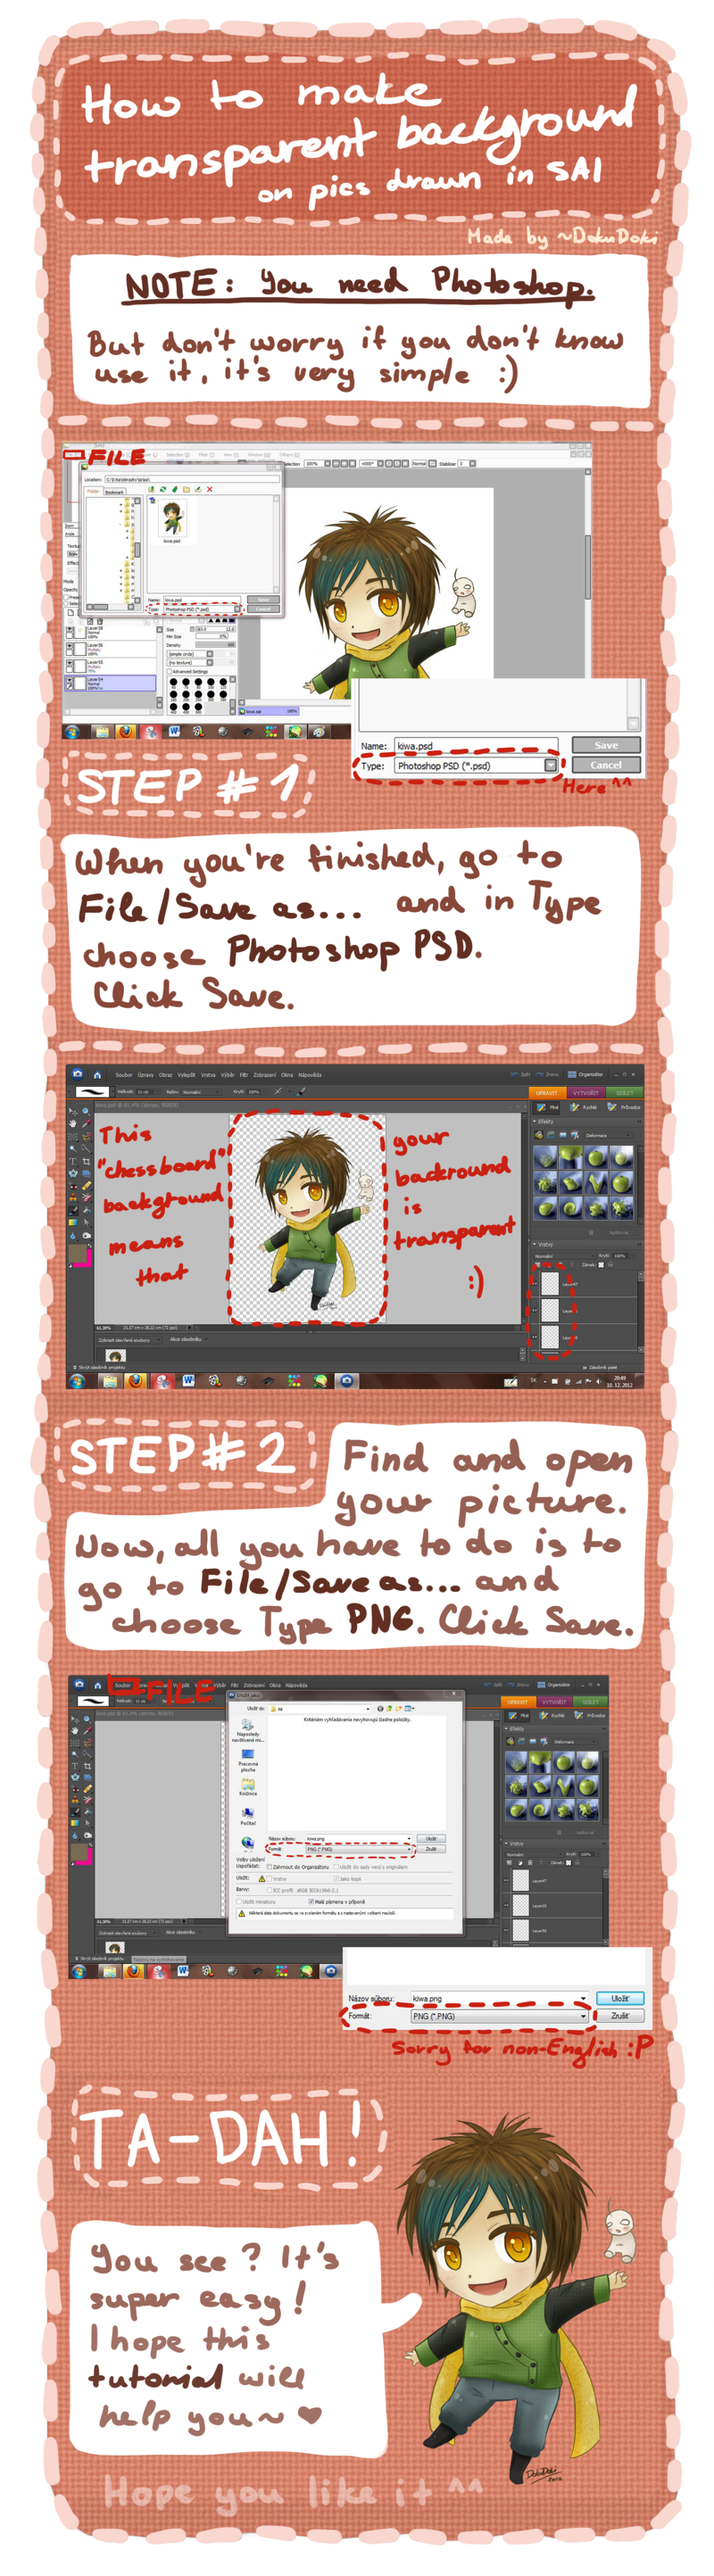 How to make a png background transparent. Tutorial on sai picture